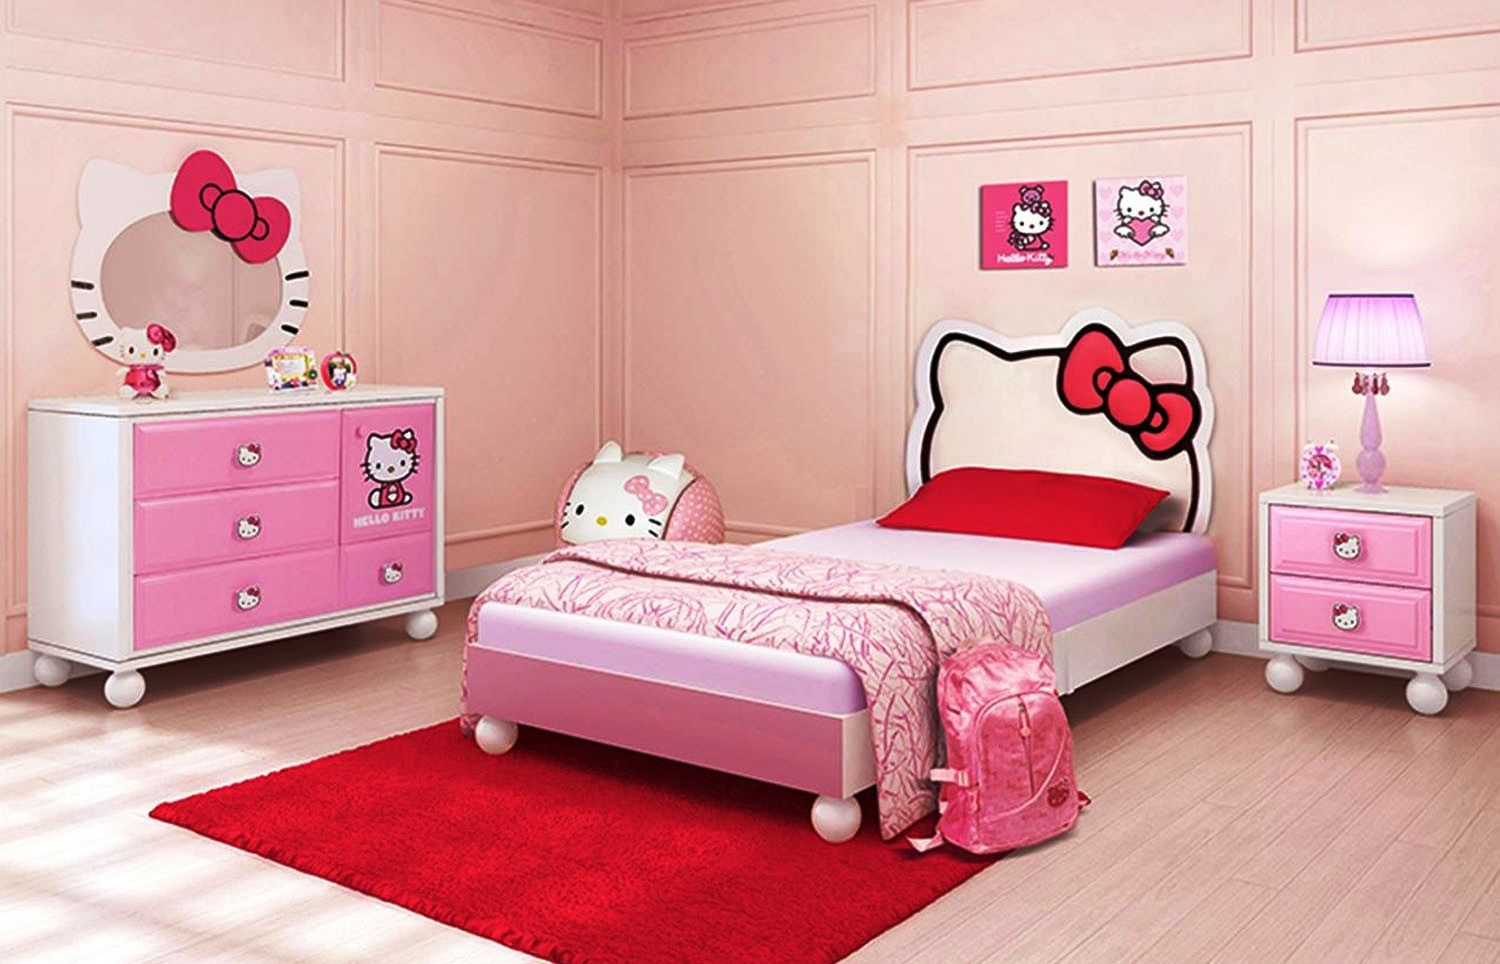 Kids room ideas for girls hello kitty - Awesome Bedroom Hello Kitty Decoration With Red Large Rugs Under Bed And Wall Mirror Also Using